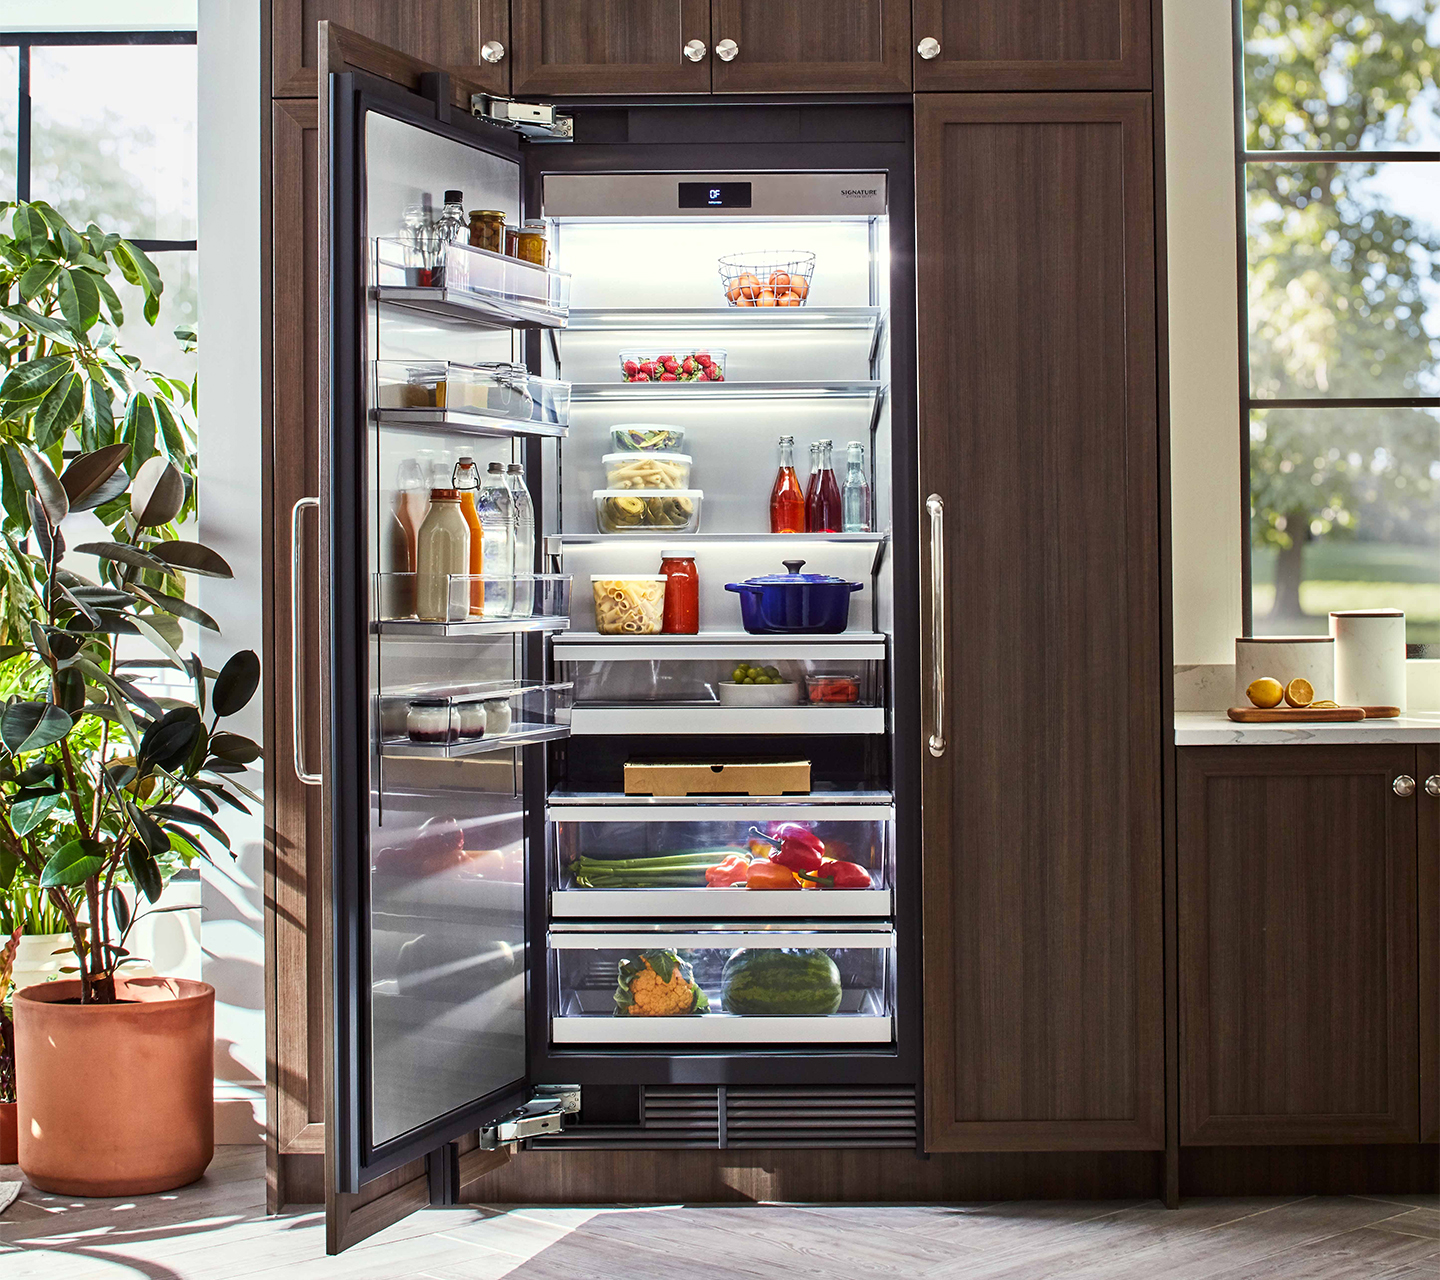 30 inch Column Refrigerator | Signature Kitchen Suite